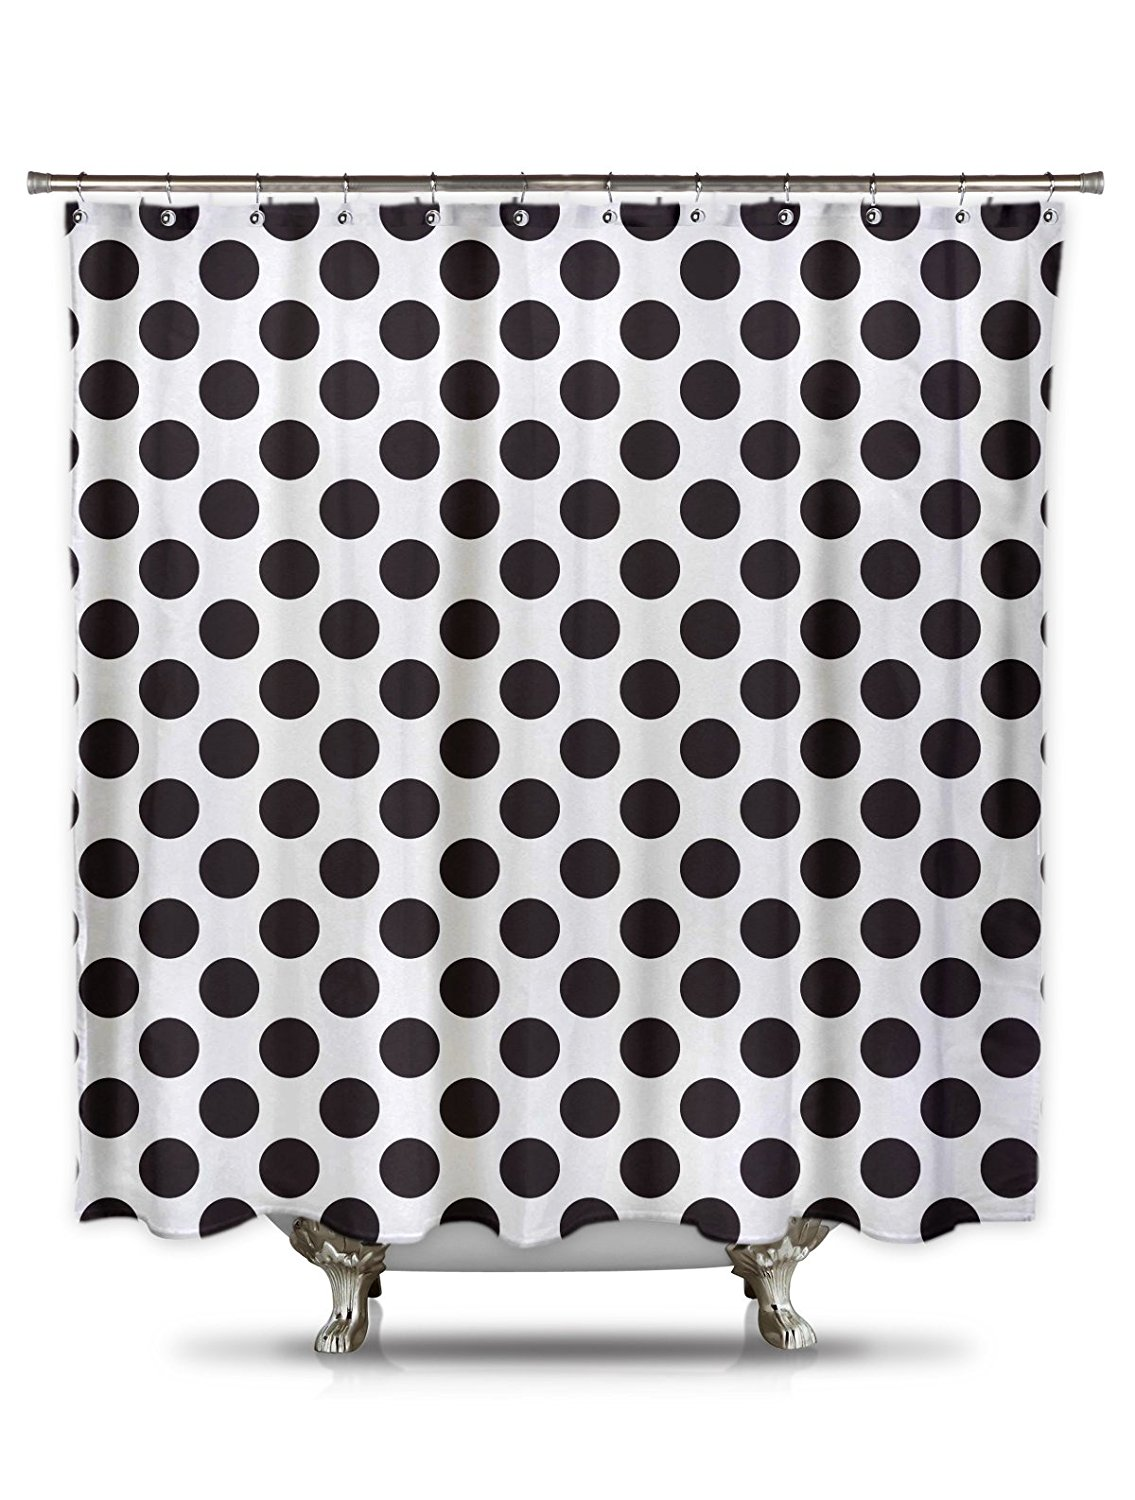 Polka dot shower curtain black and white - Warm Tour Black And White Polka Dot Shower Curtain100 Polyester Mildew And Wrinkle Resistant